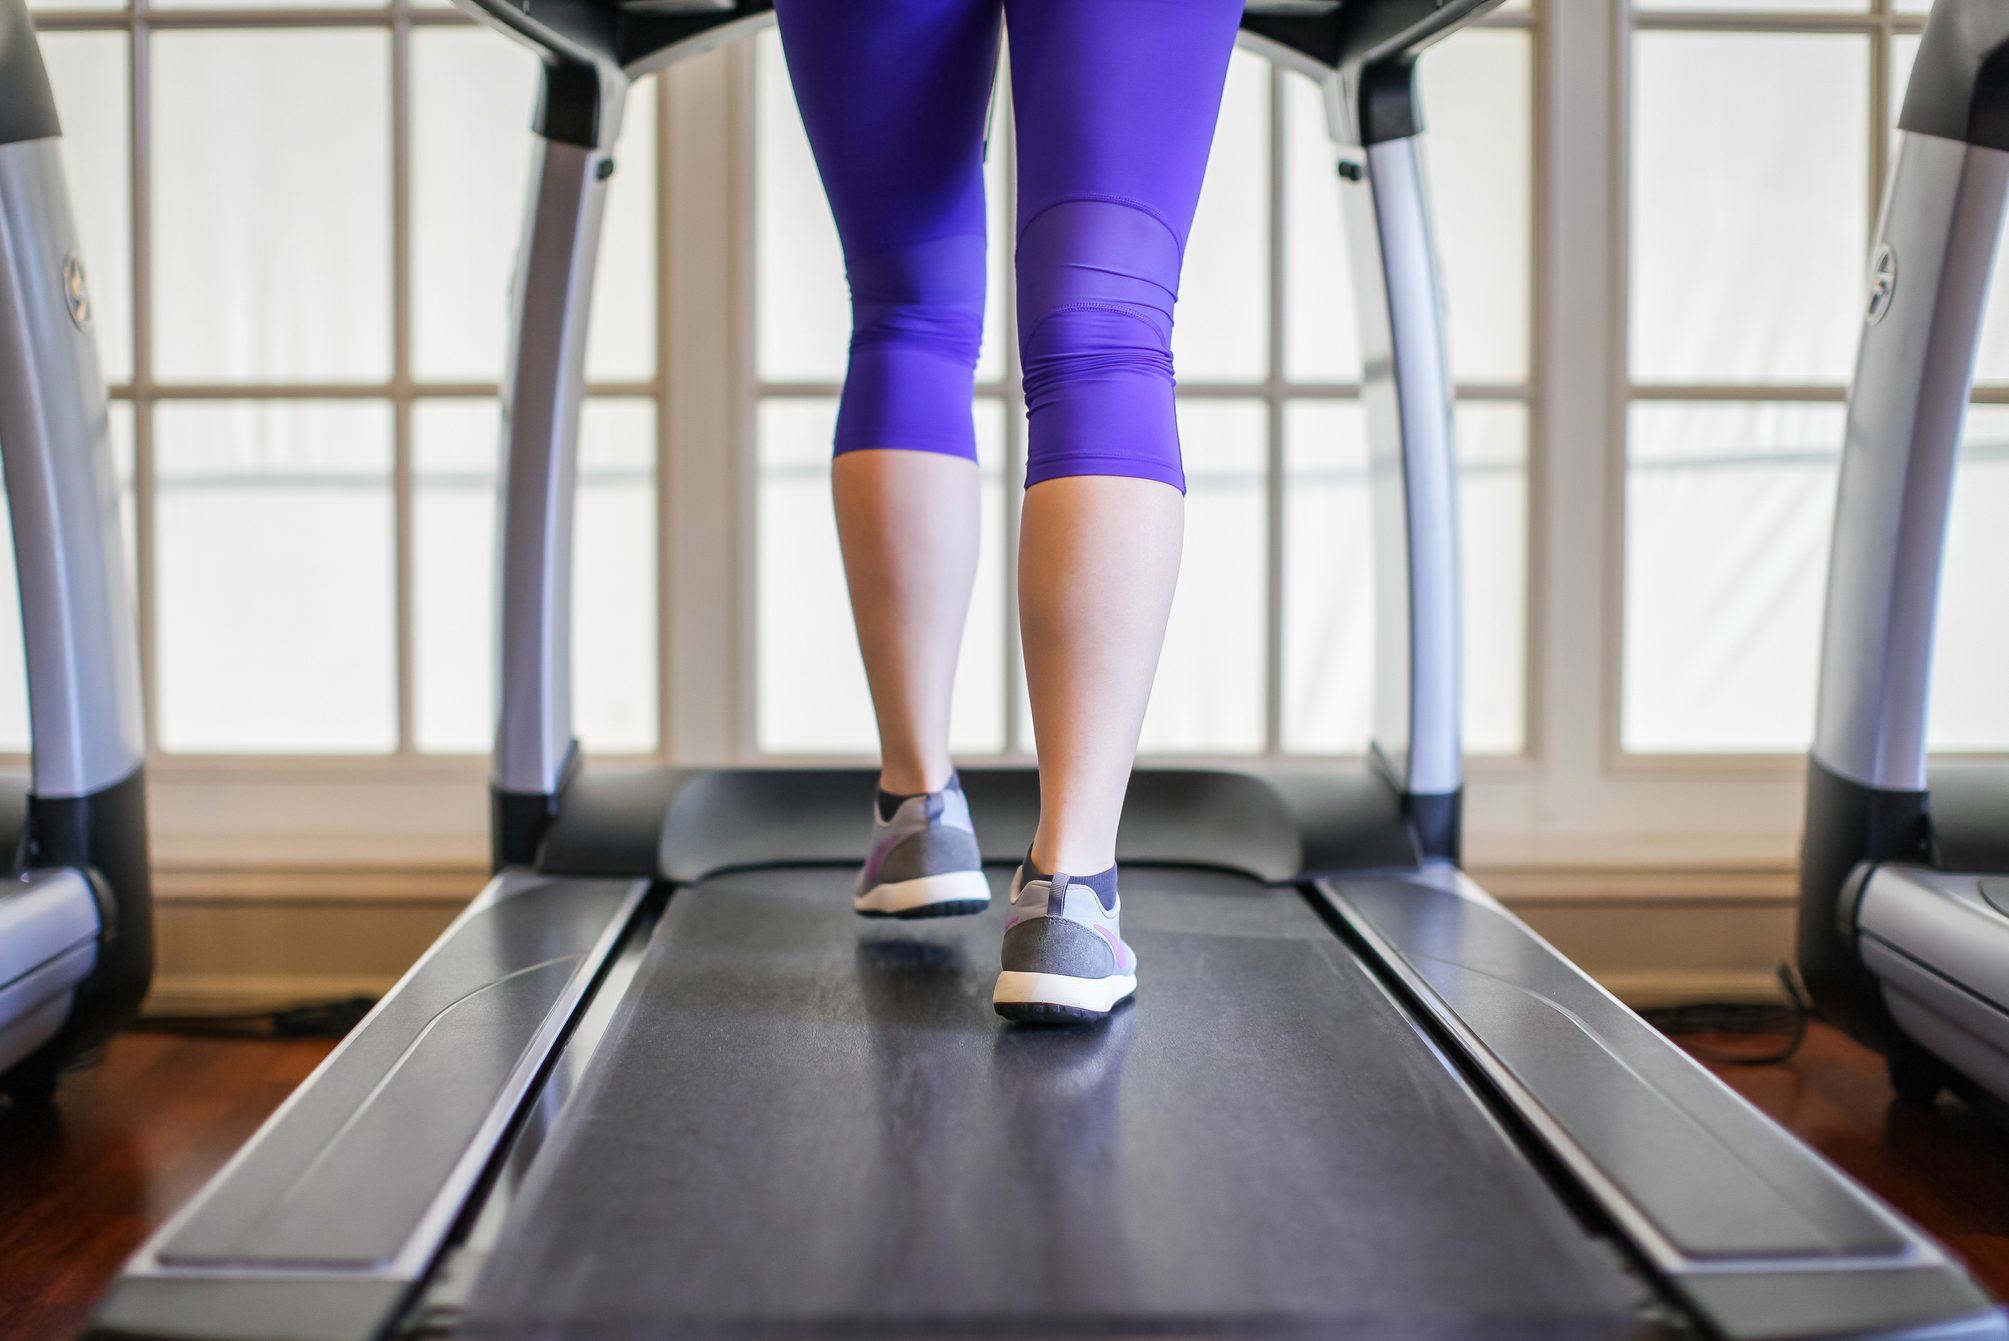 Low Section Of Woman Running On Treadmill At Gym